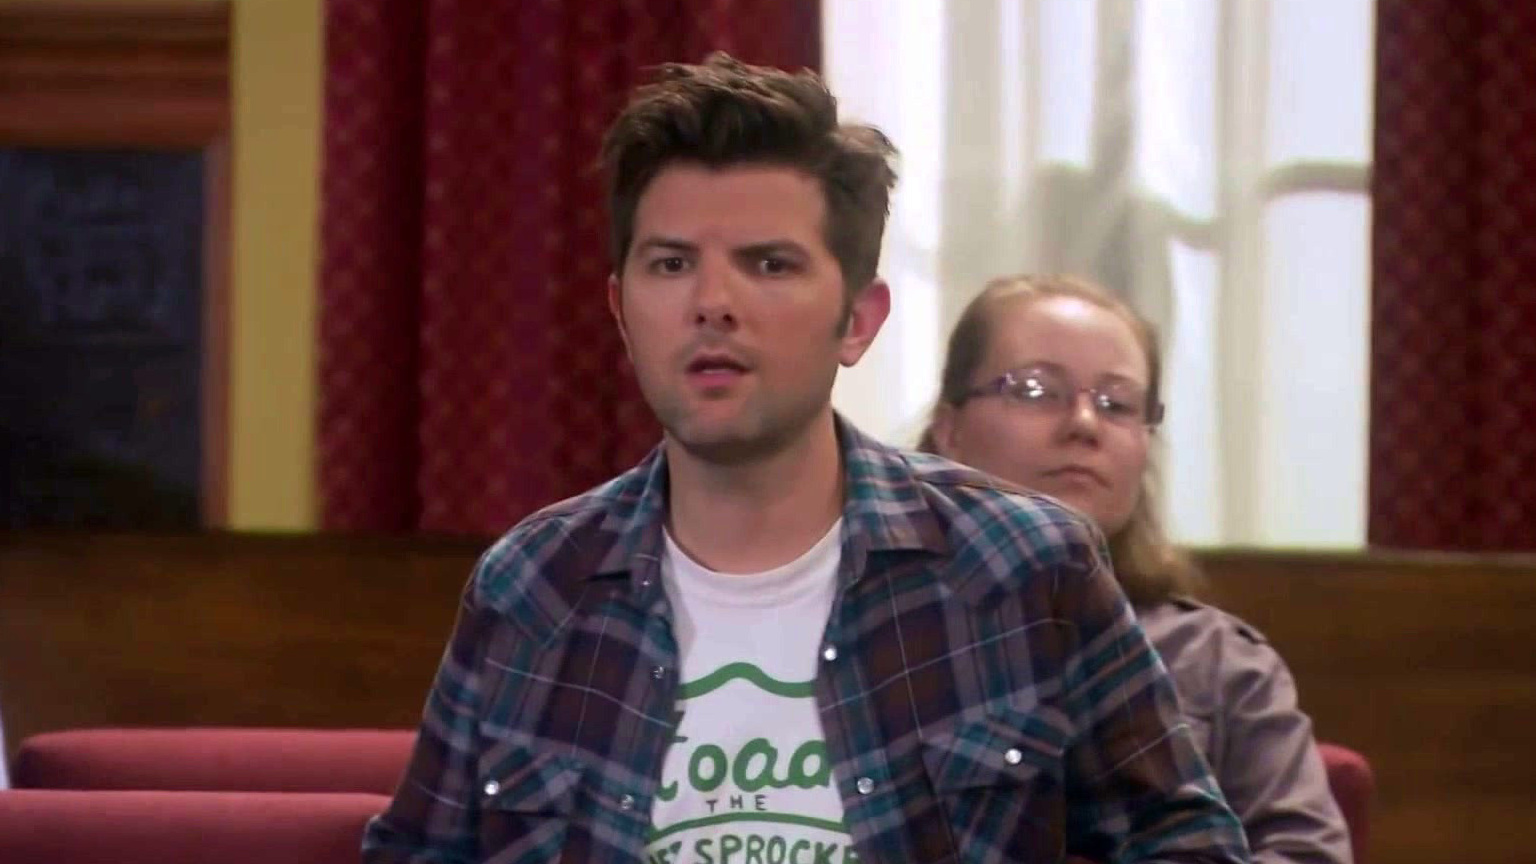 Parks And Recreation: Leslie Knope's First Strike